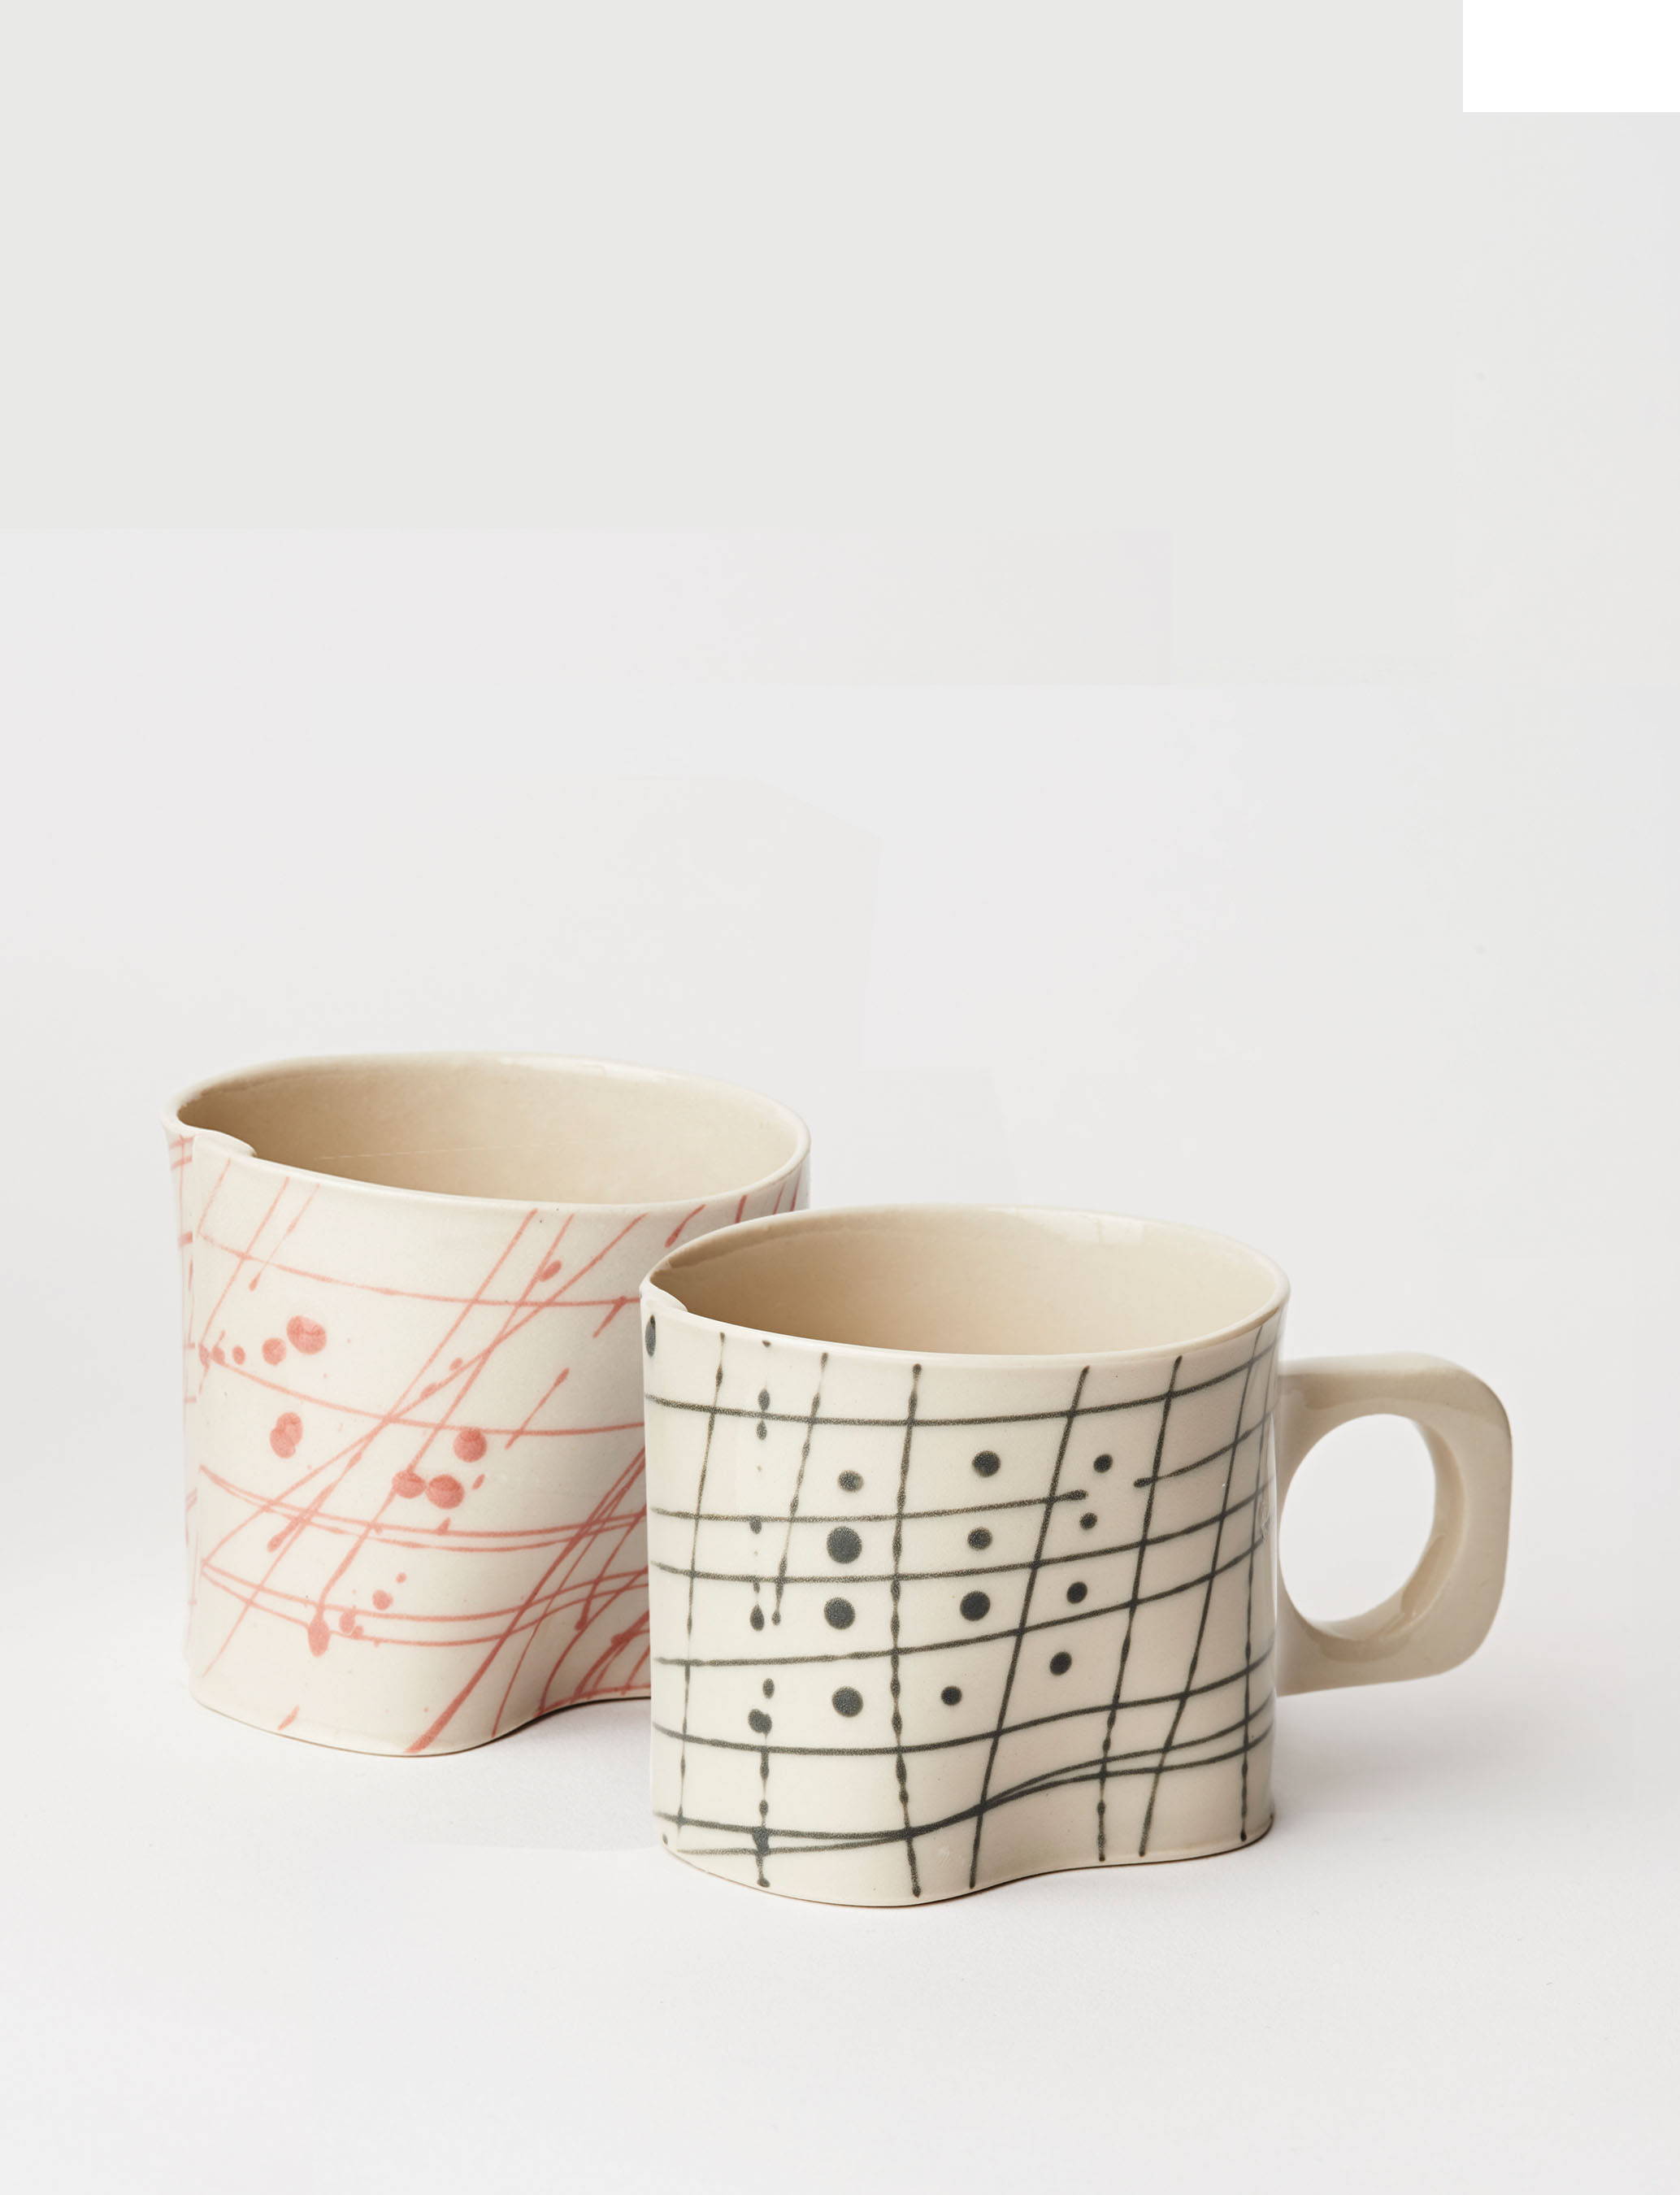 mug workshop